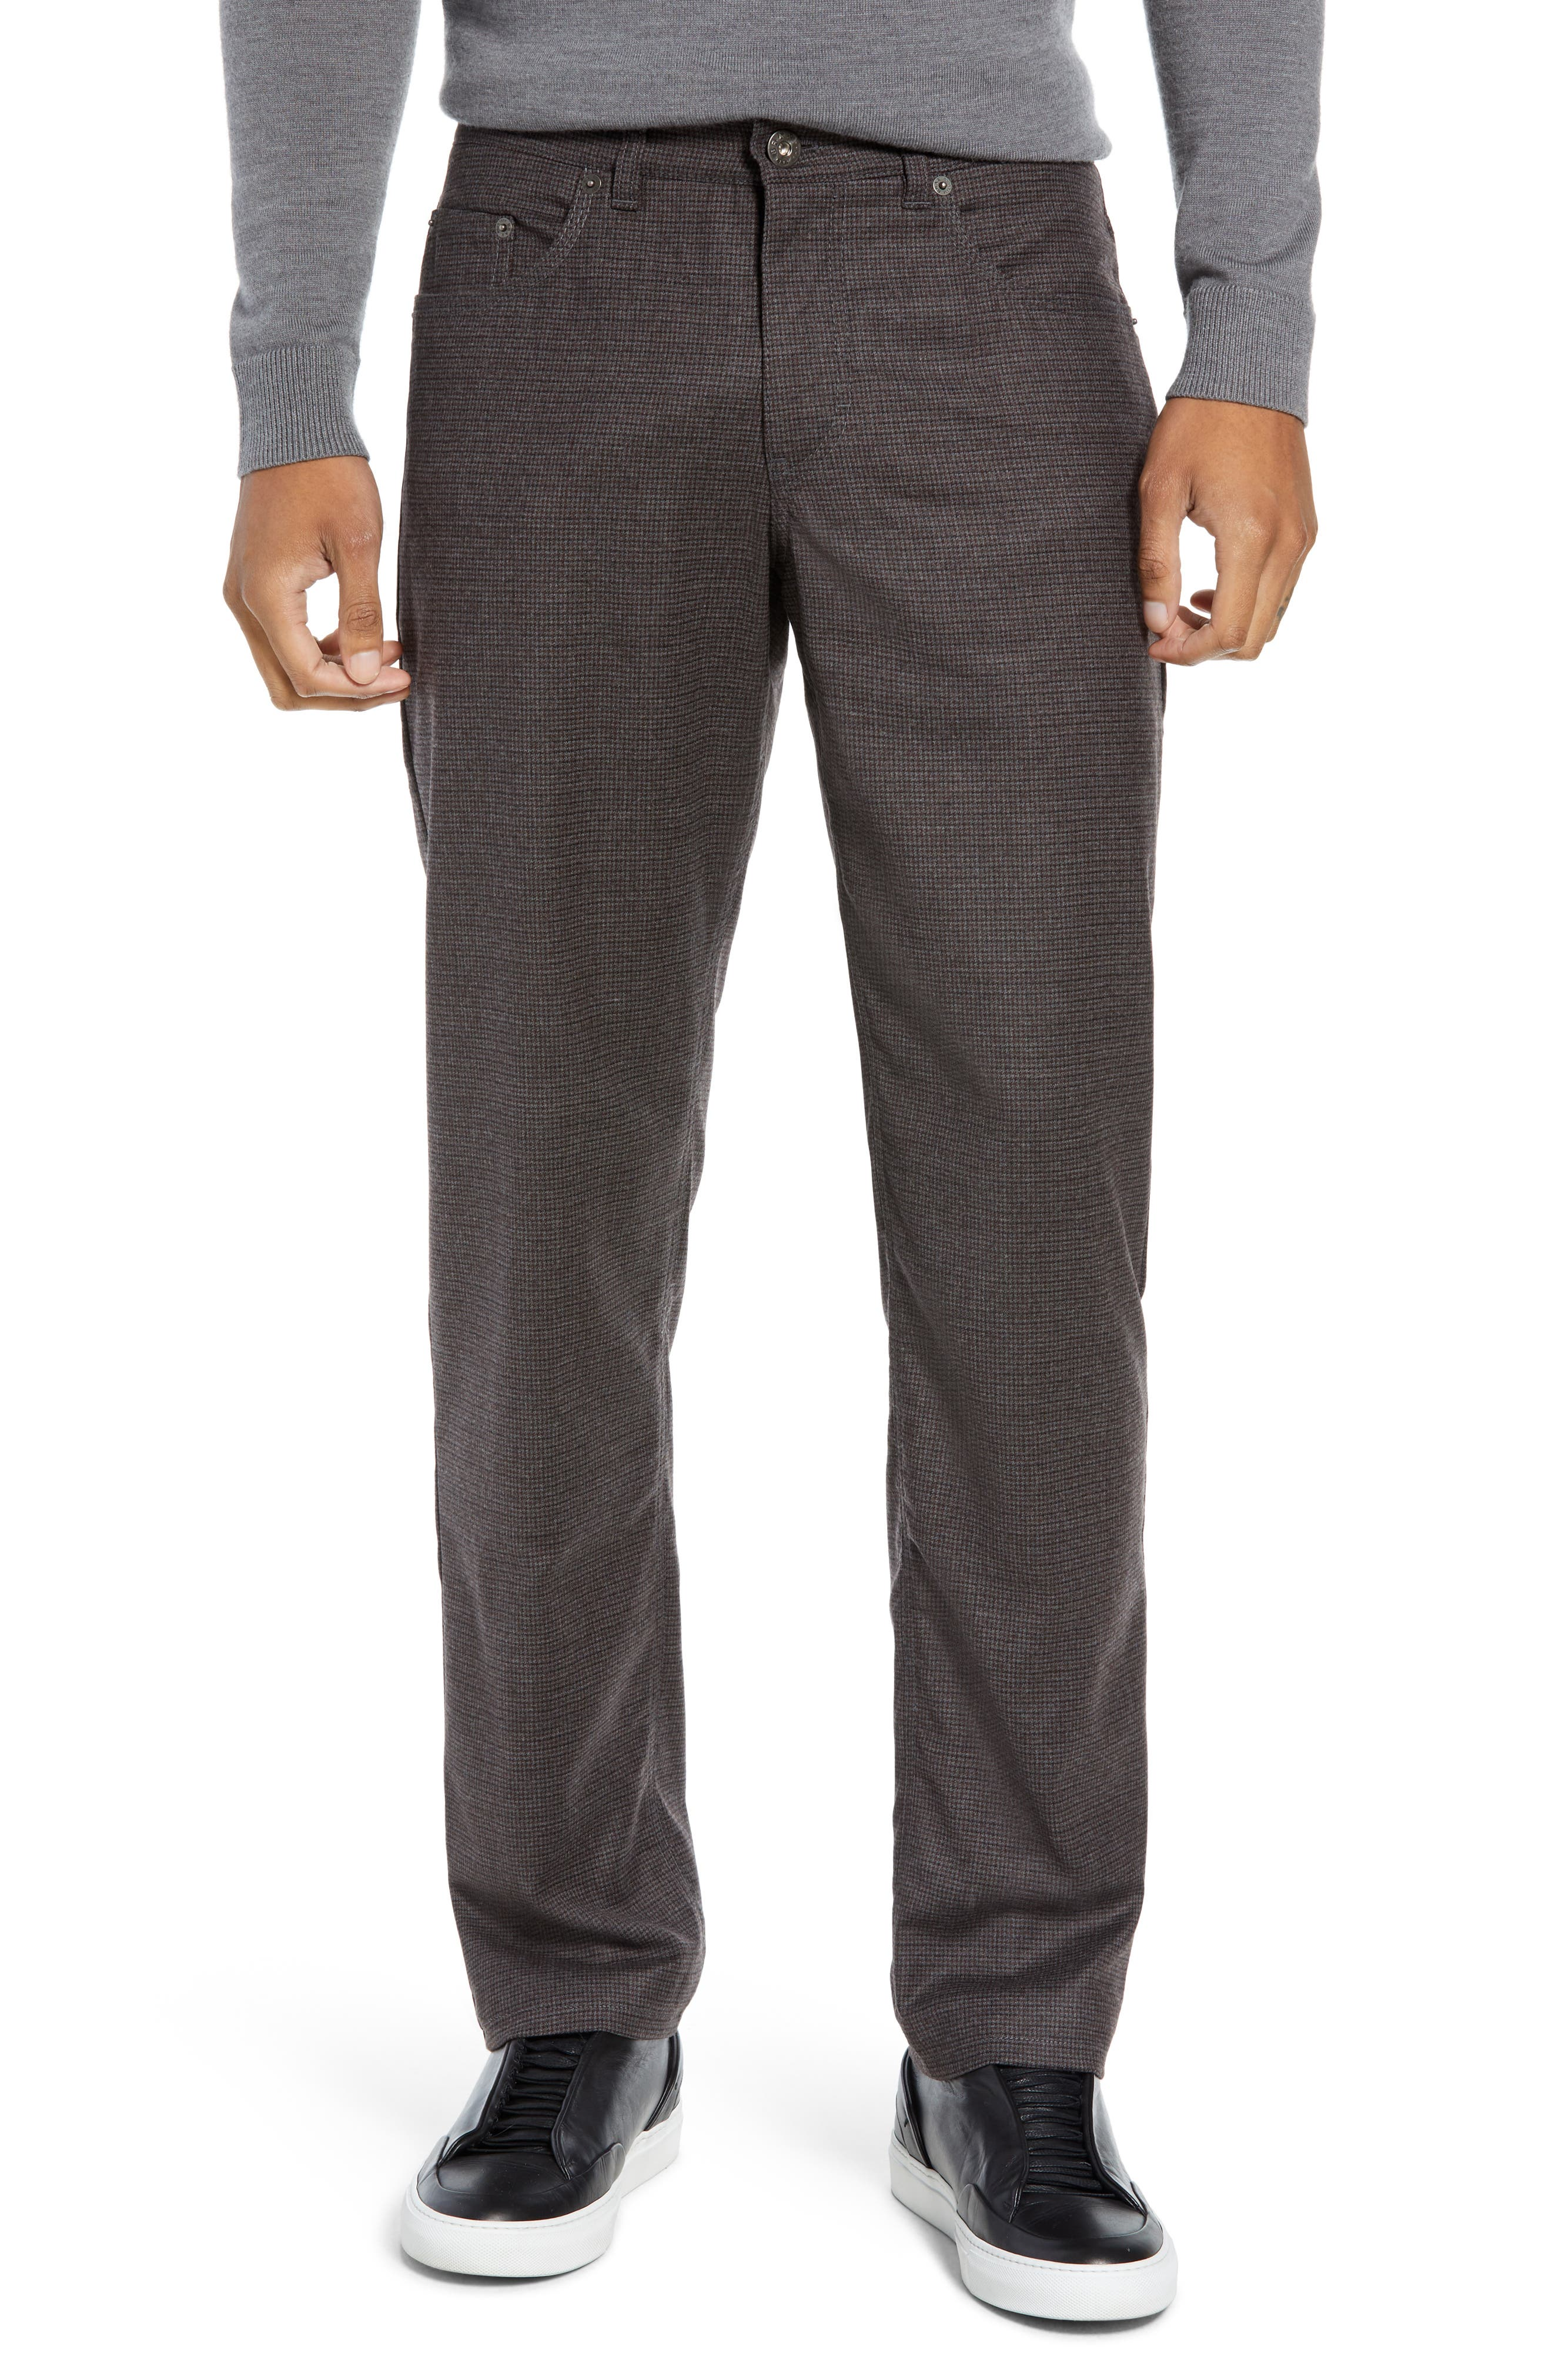 Cadiz Five Pocket Stretch Wool Trousers,                             Main thumbnail 1, color,                             ANTHRACITE